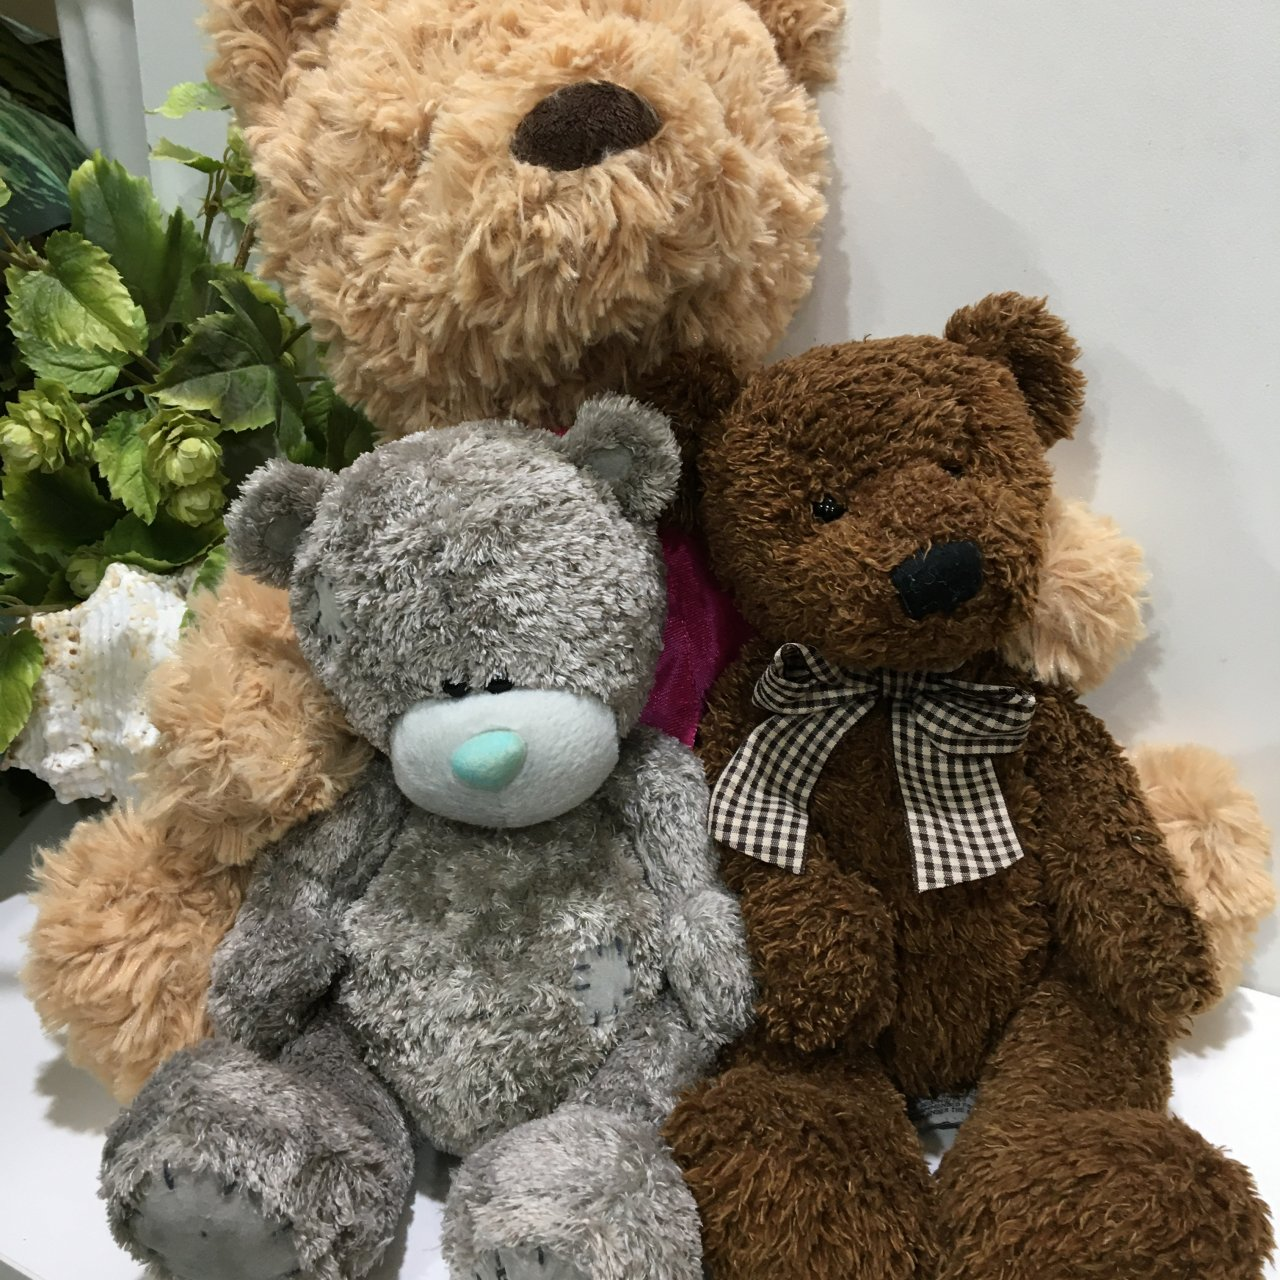 50% Off - Teddy Bear Bundle x 3, Tan/Brown/Grey